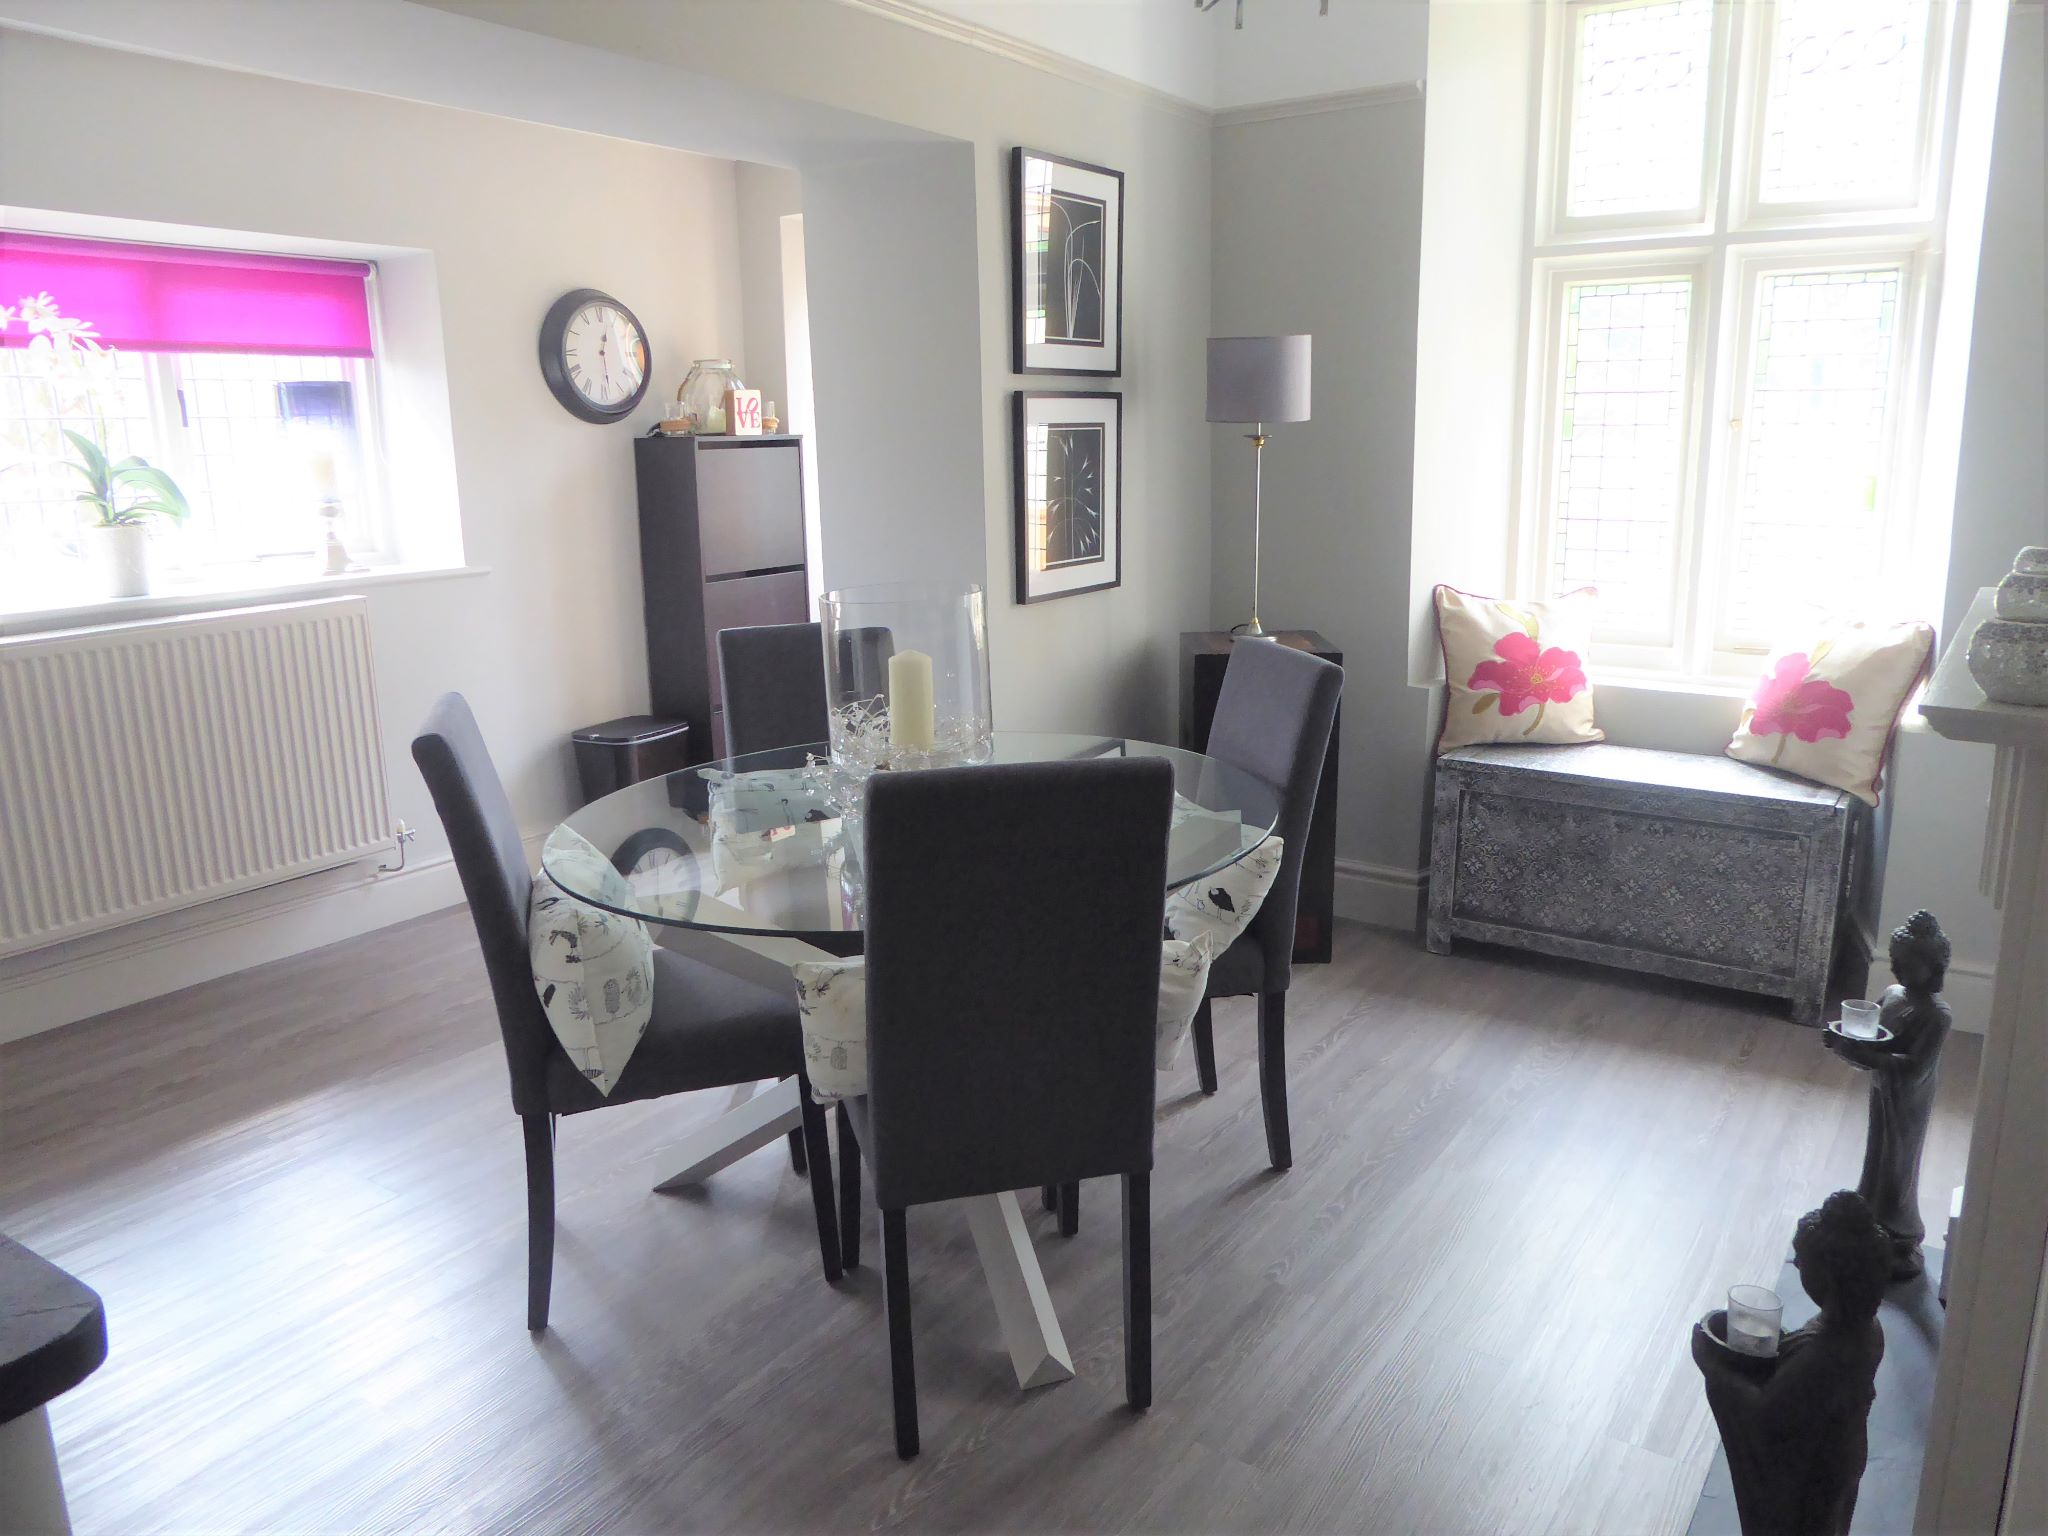 2 bedroom cottage house SSTC in Abergele - Photograph 8